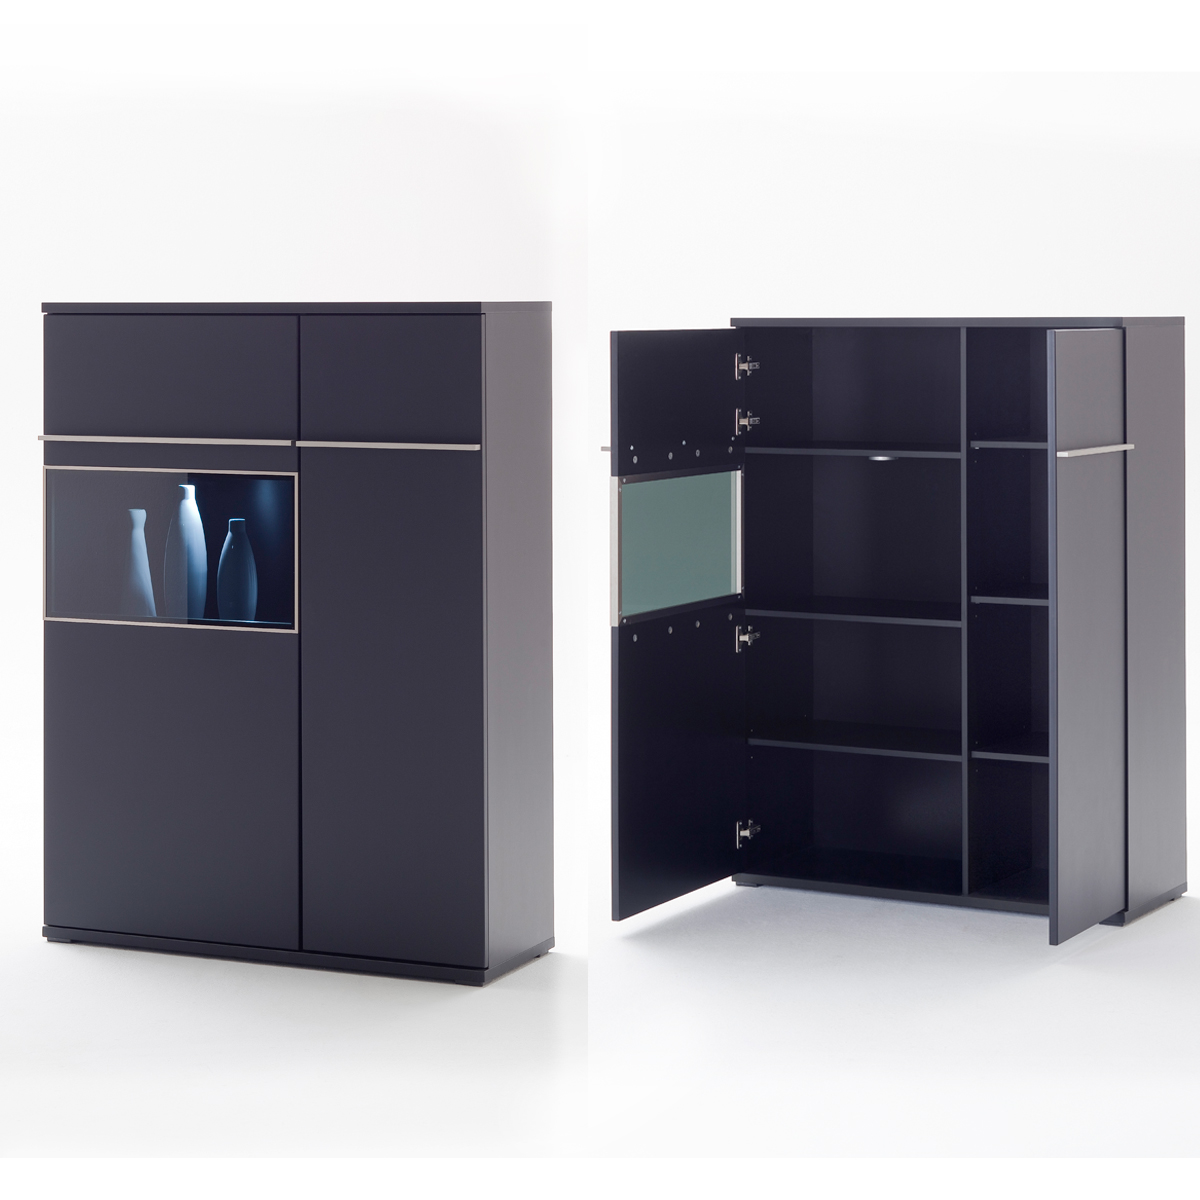 highboard rechts black schwarz matt lackiert glas mit edelstahlrahmen ebay. Black Bedroom Furniture Sets. Home Design Ideas